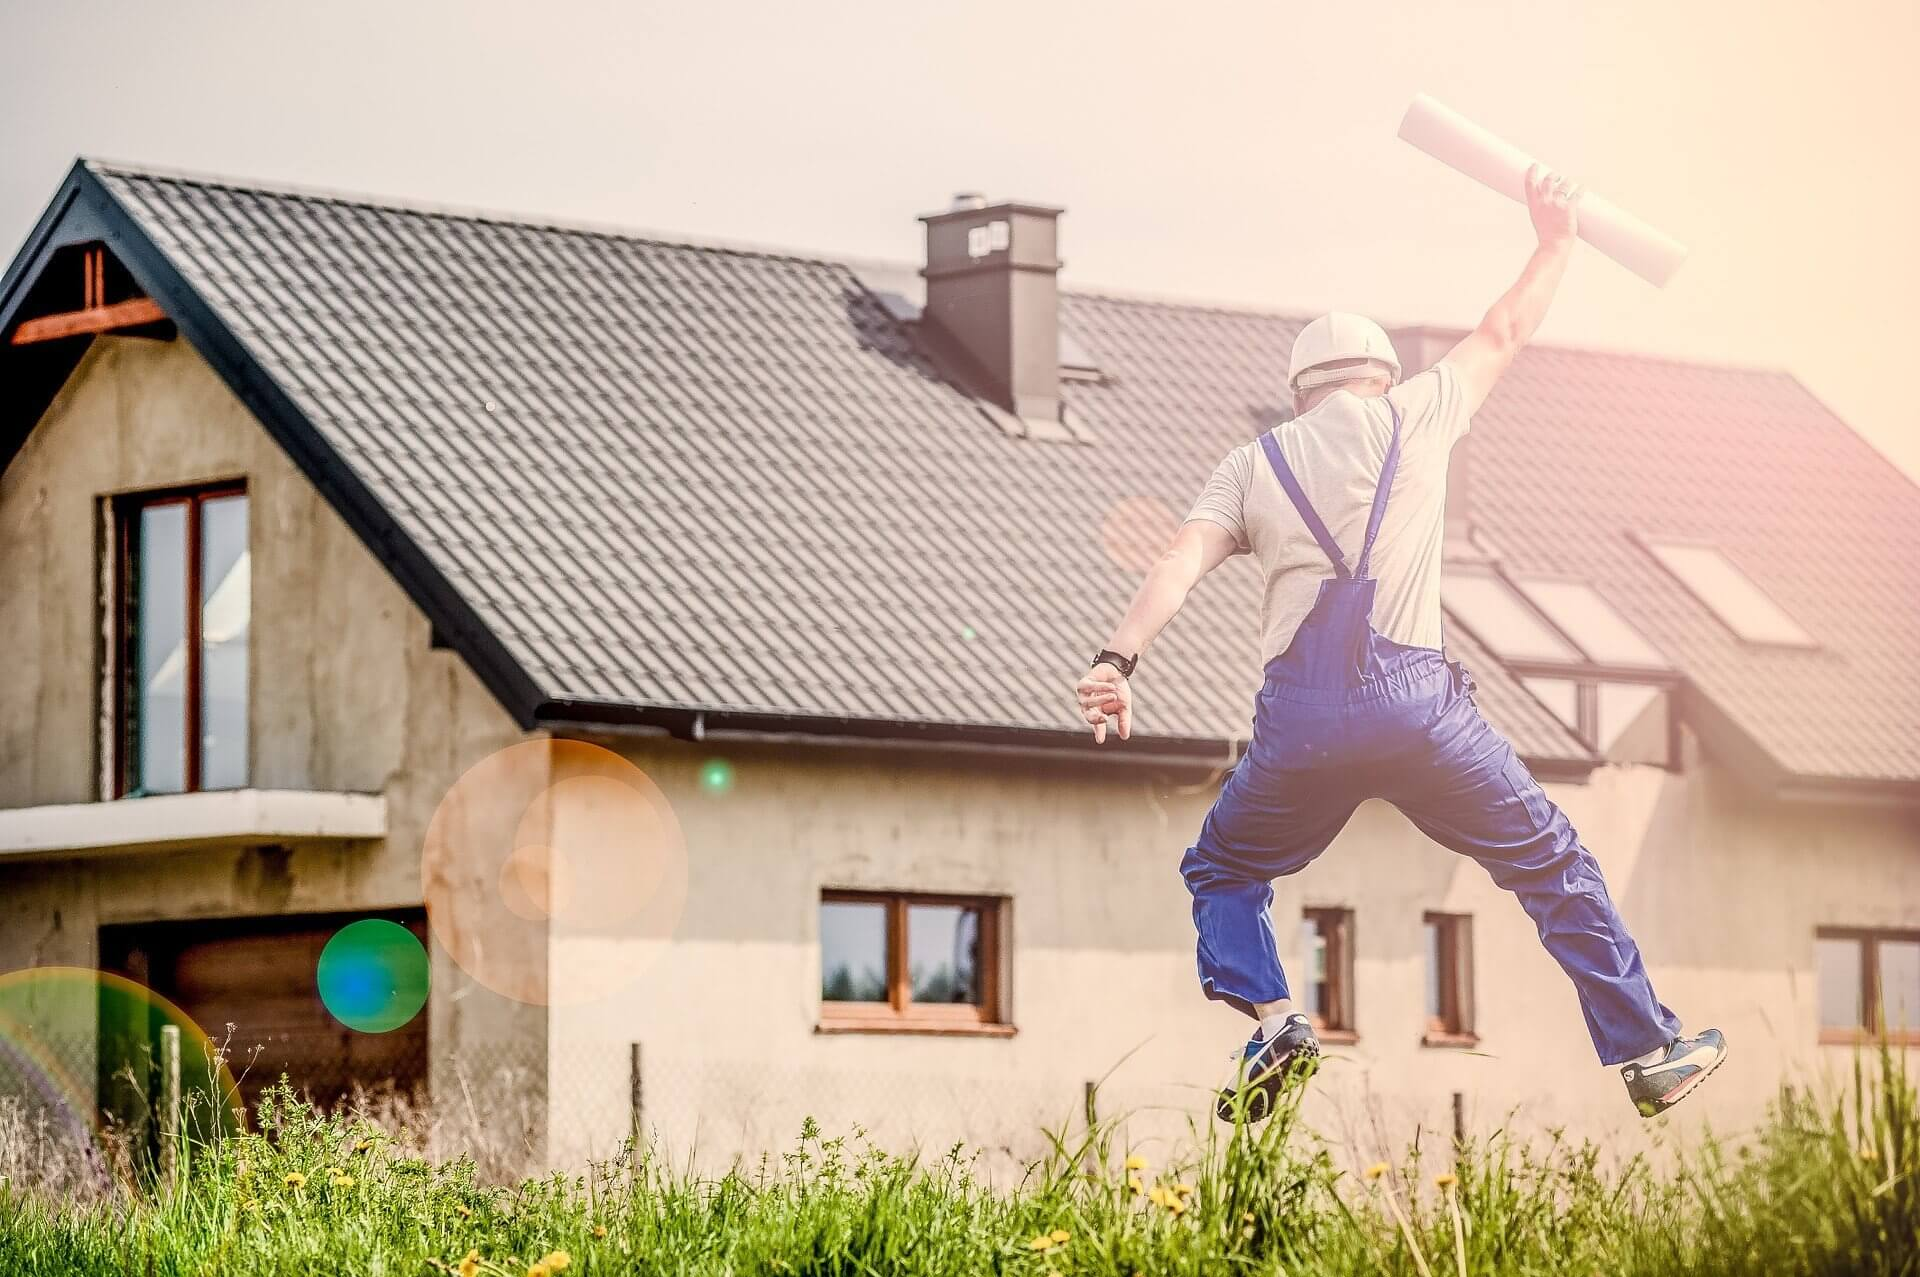 construction worker jumping for joy because he optimized his Houzz profile with our tips